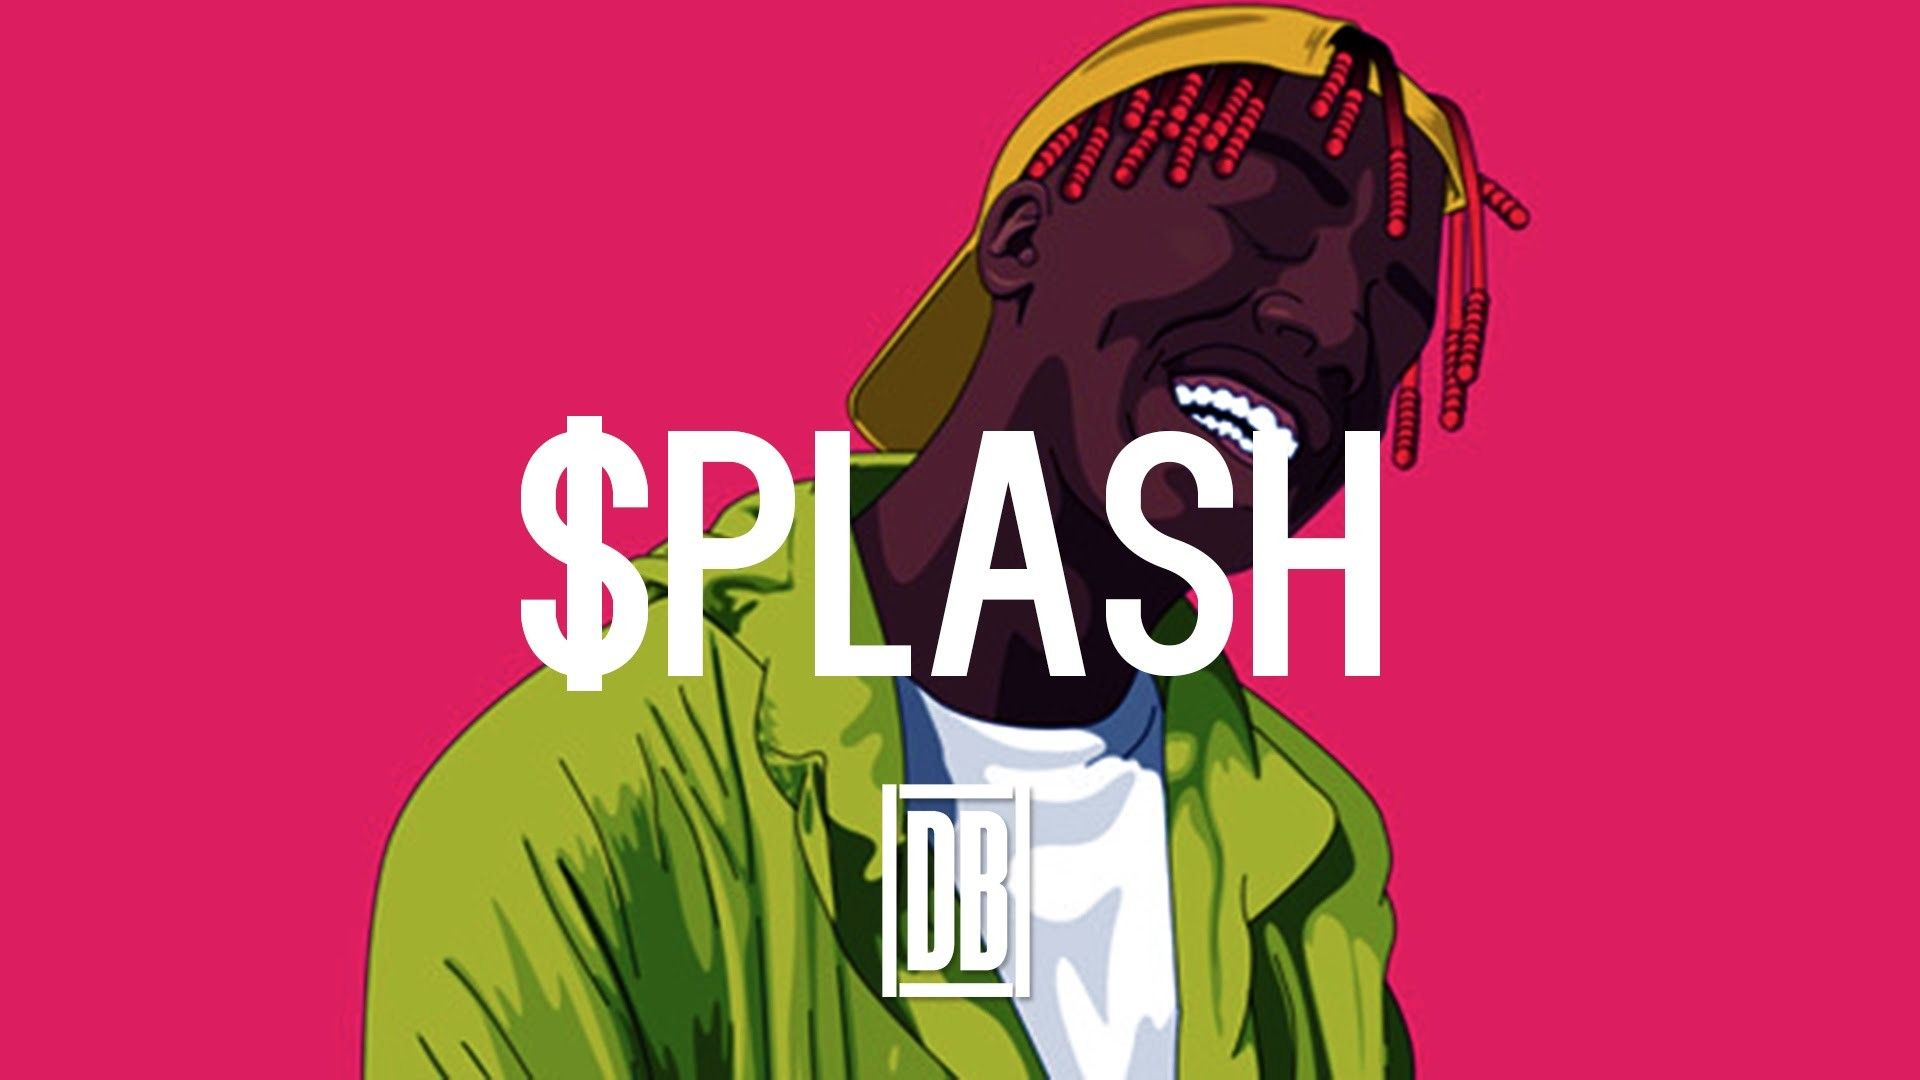 Lil Yachty Wallpapers Top Free Lil Yachty Backgrounds